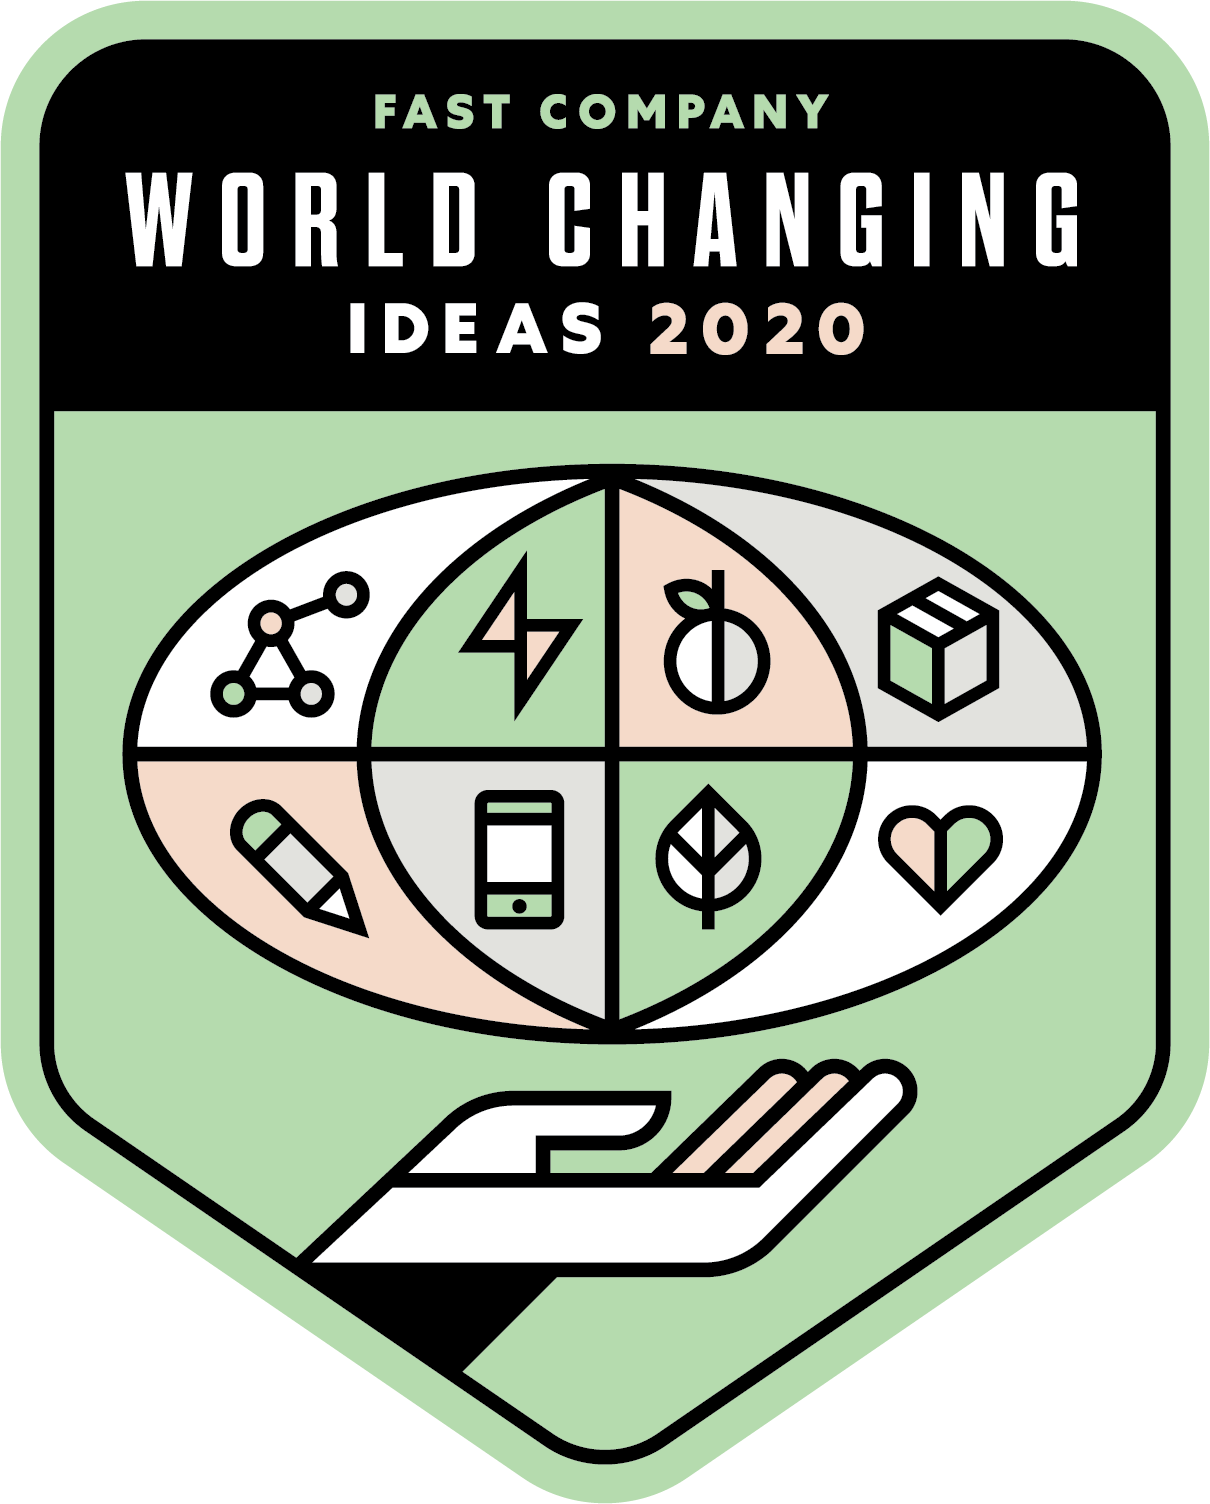 Fast Company World Changing Ideas 2020 in the category of politics and policy